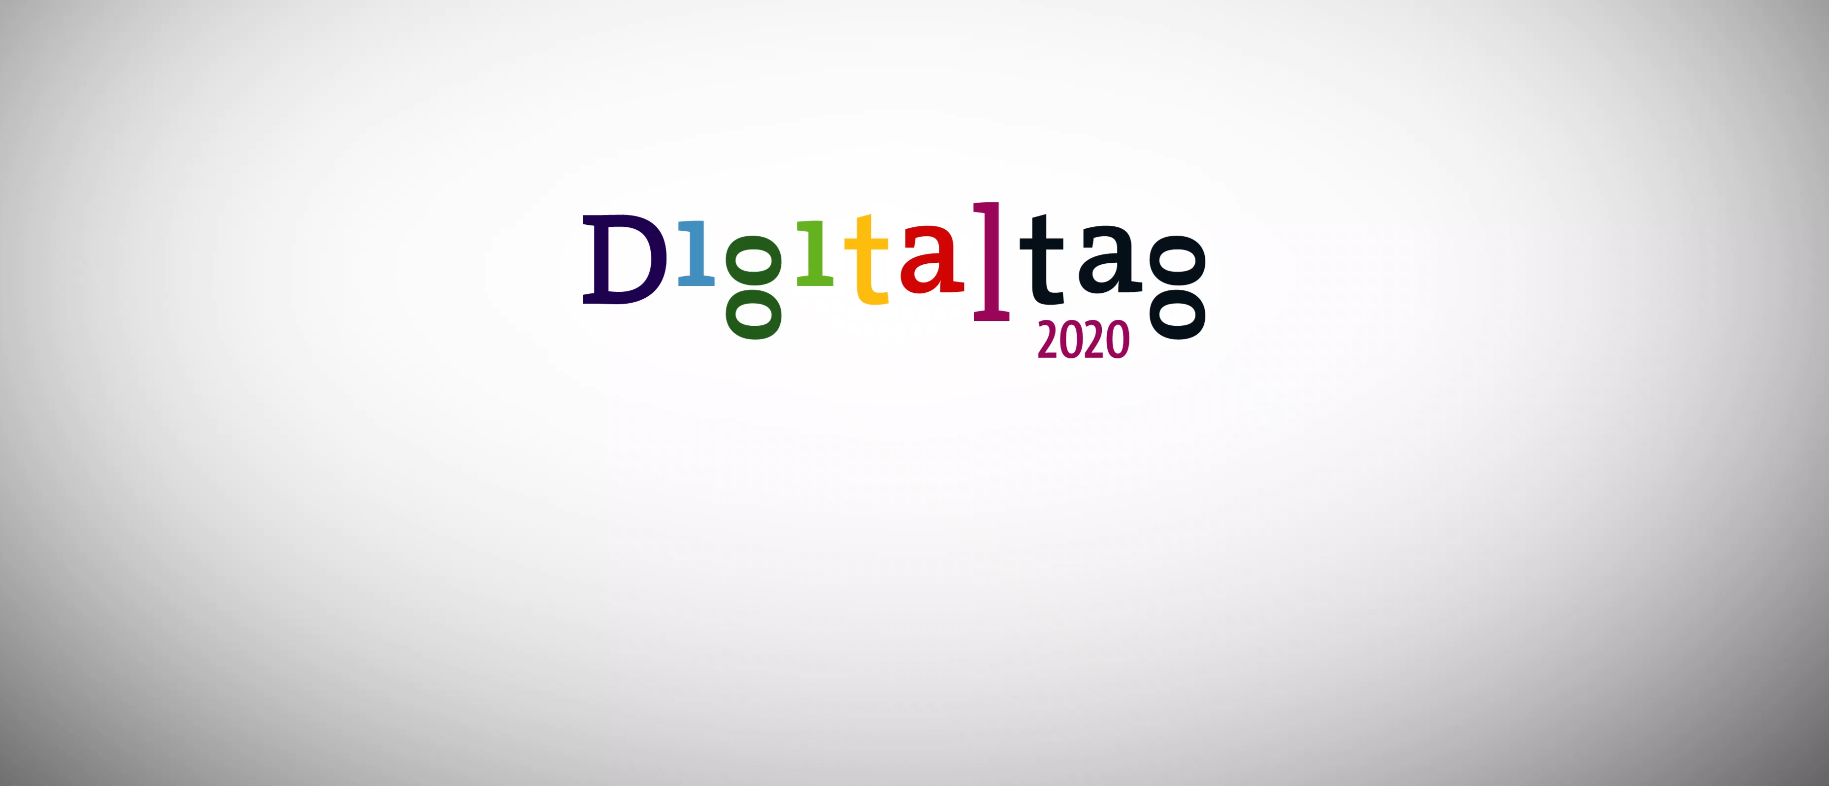 Digitaltag Video